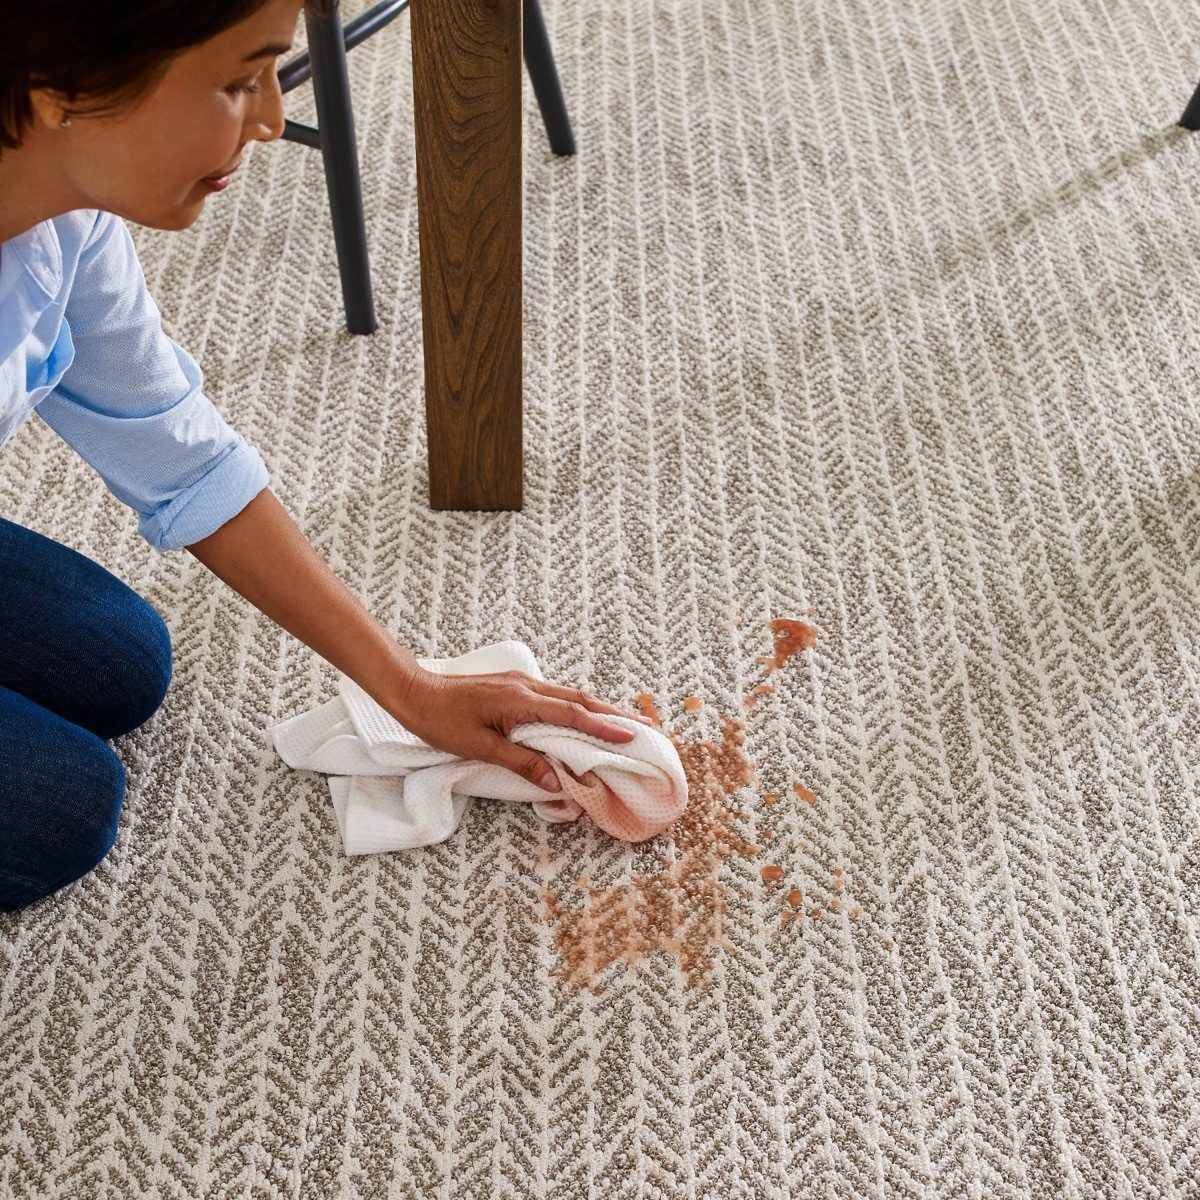 Stain cleaning tips | Roberts Carpet & Fine Floors